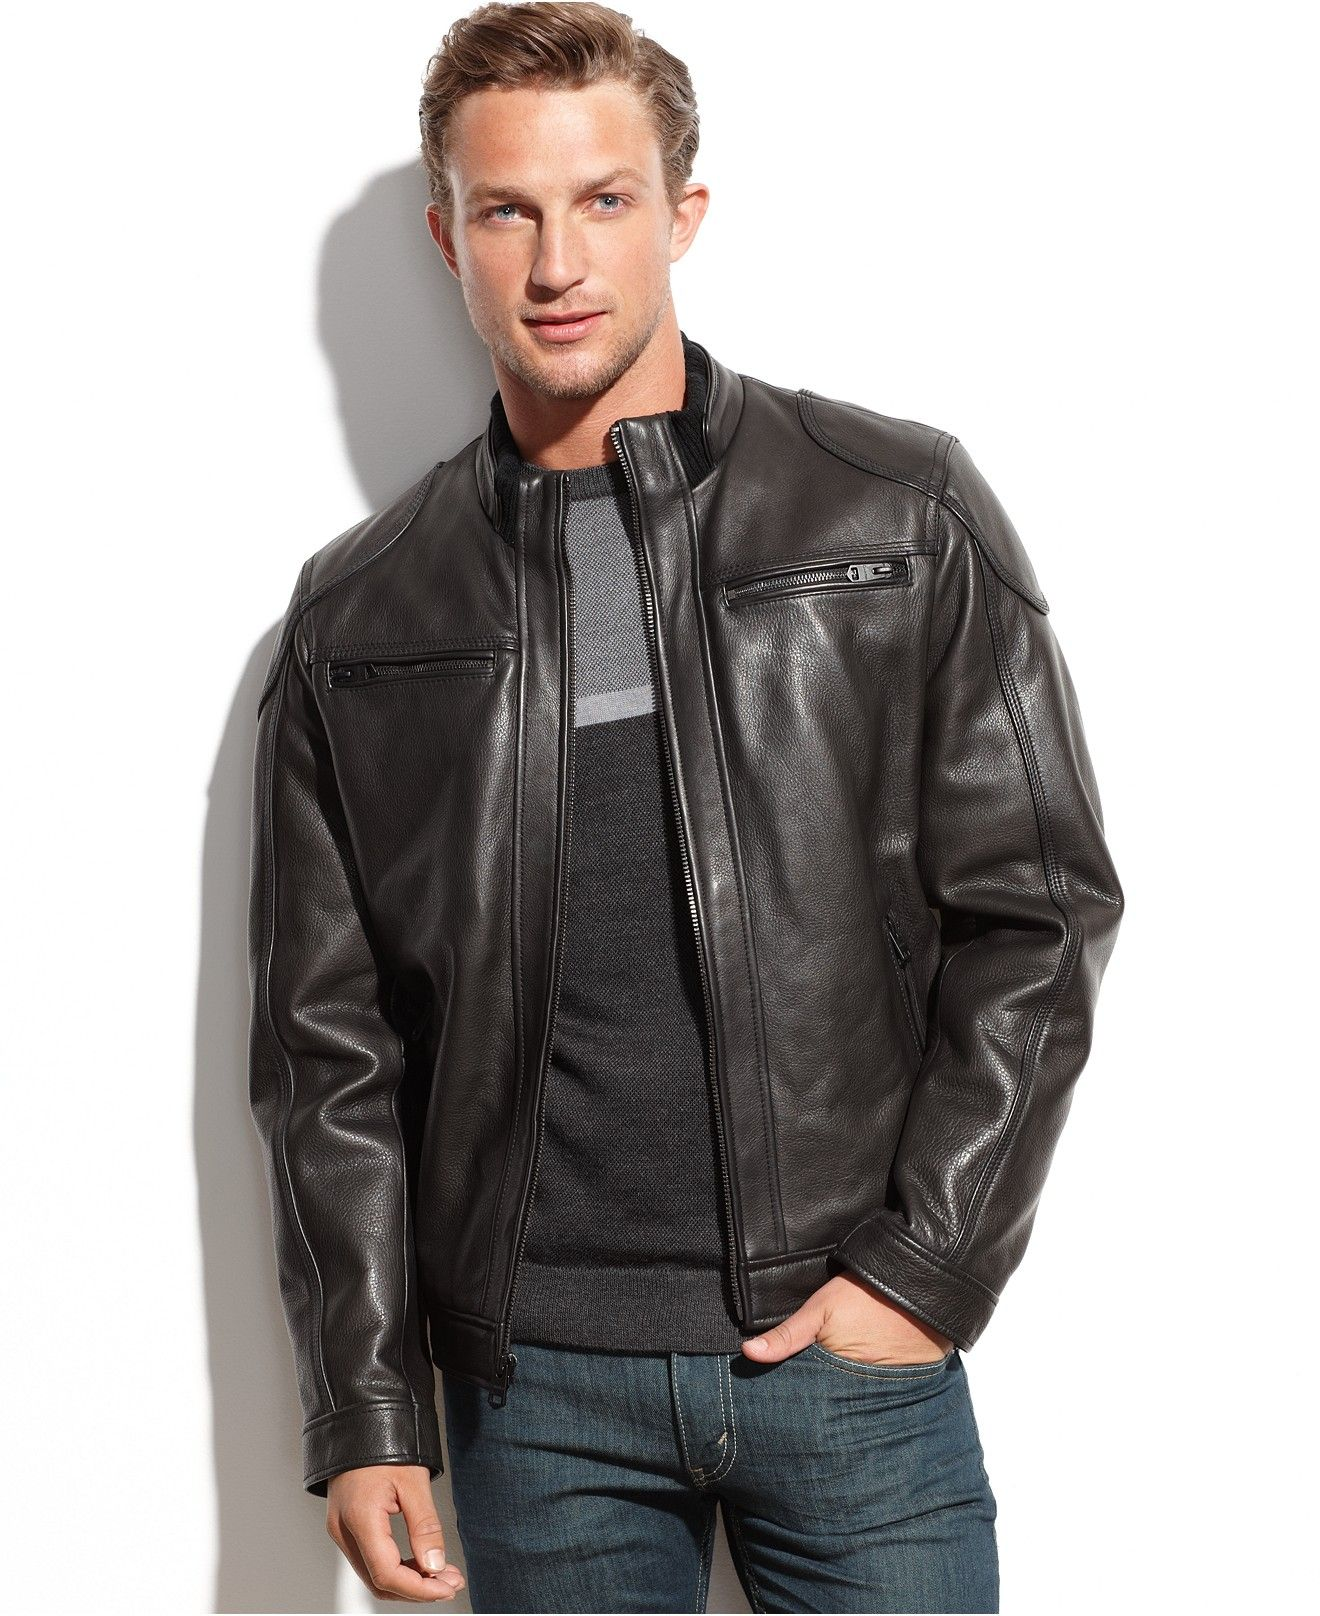 0b332373ae06 Calvin Klein Leather Moto Jacket - Coats & Jackets - Men - Macy's ...